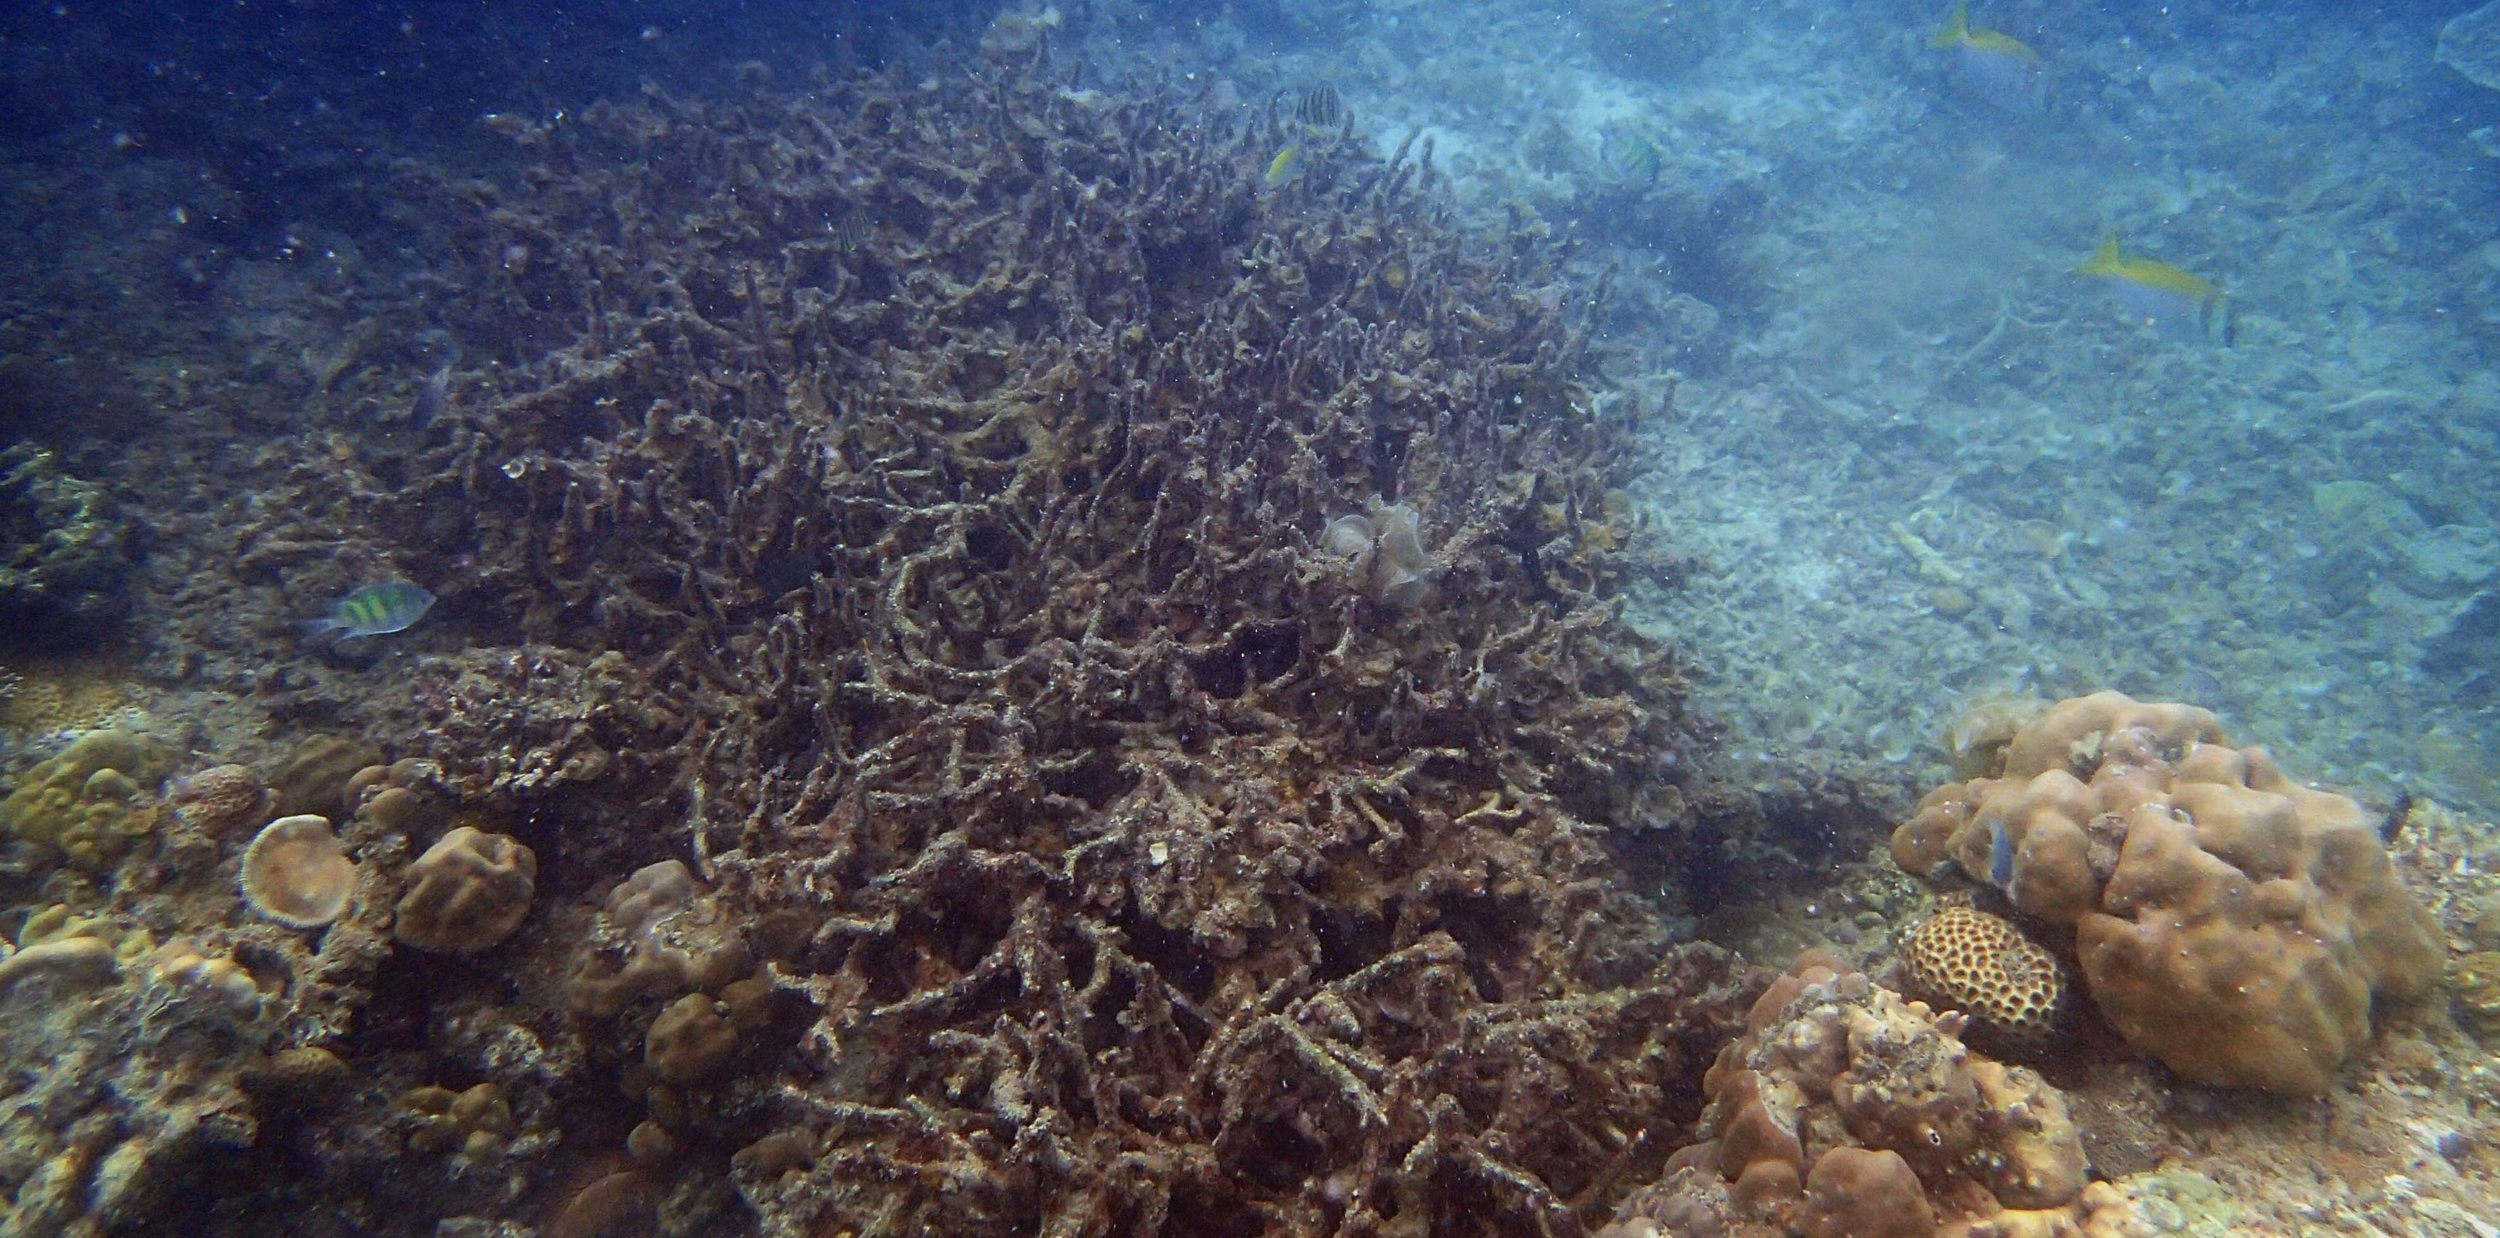 pollution damaged reef.jpg